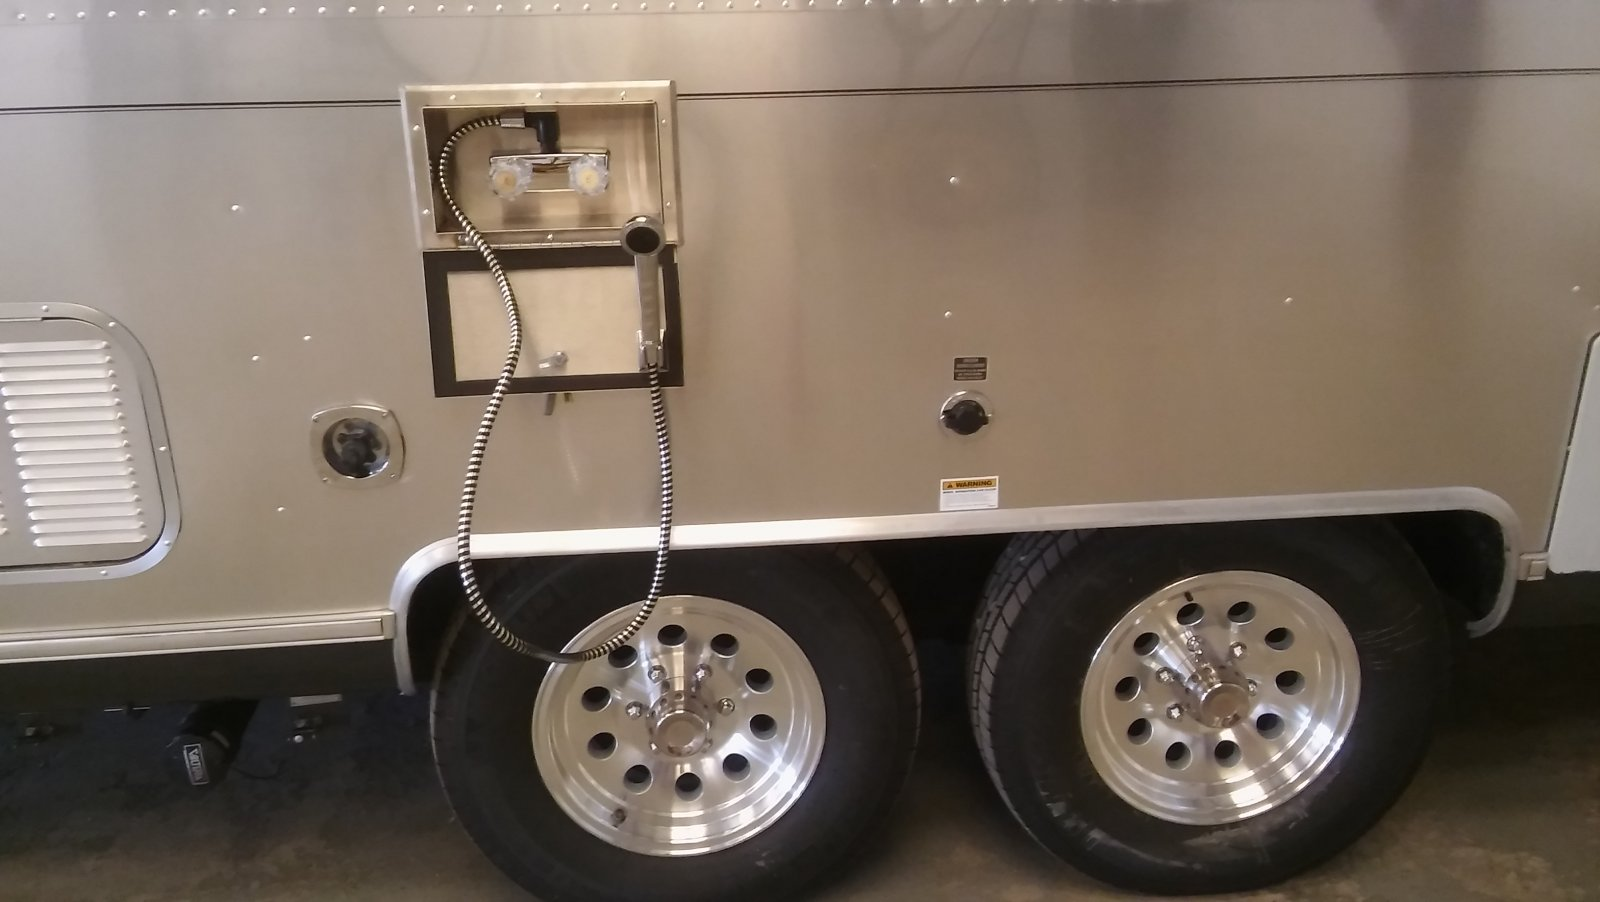 Click image for larger version  Name:Airstream outdoor shower new tires and wheels.jpg Views:369 Size:131.2 KB ID:264201